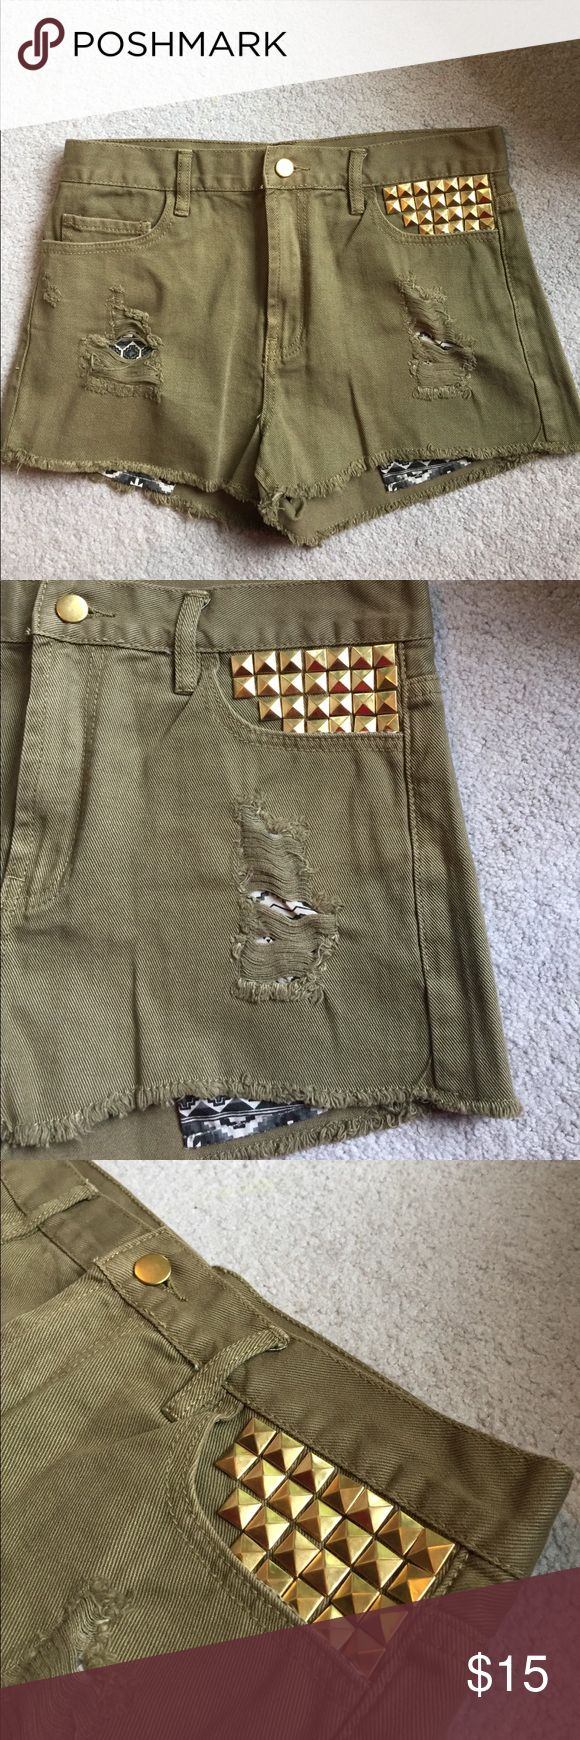 NEVER WORN army green accented shorts! I bought these to wear to a Kanye West concert, but I ended up wearing something else. They've never been worn and are still in great condition. They are high waisted and have patterns pockets underneath that show more when they're on a body rather than what they look like in the picture. Really cute shorts!! Shorts Jean Shorts